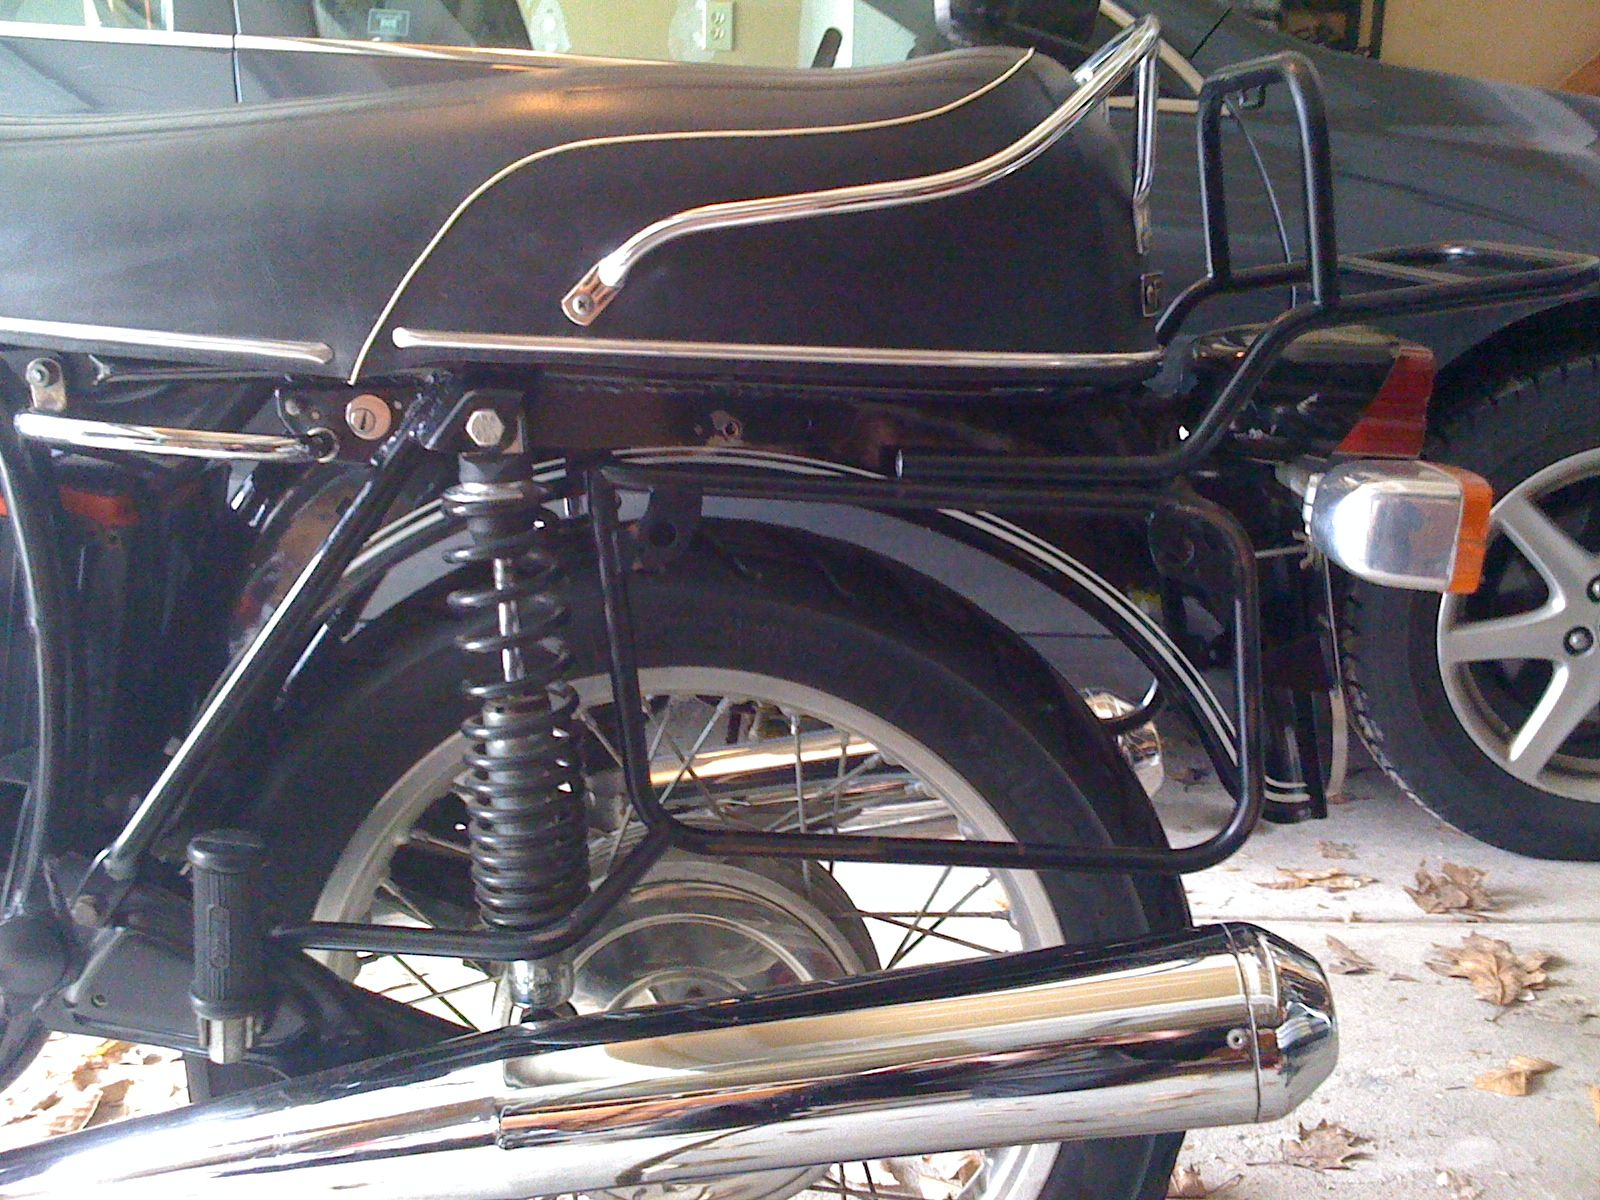 new here, looking for r75/5 parts | Vintage BMW Motorcycle